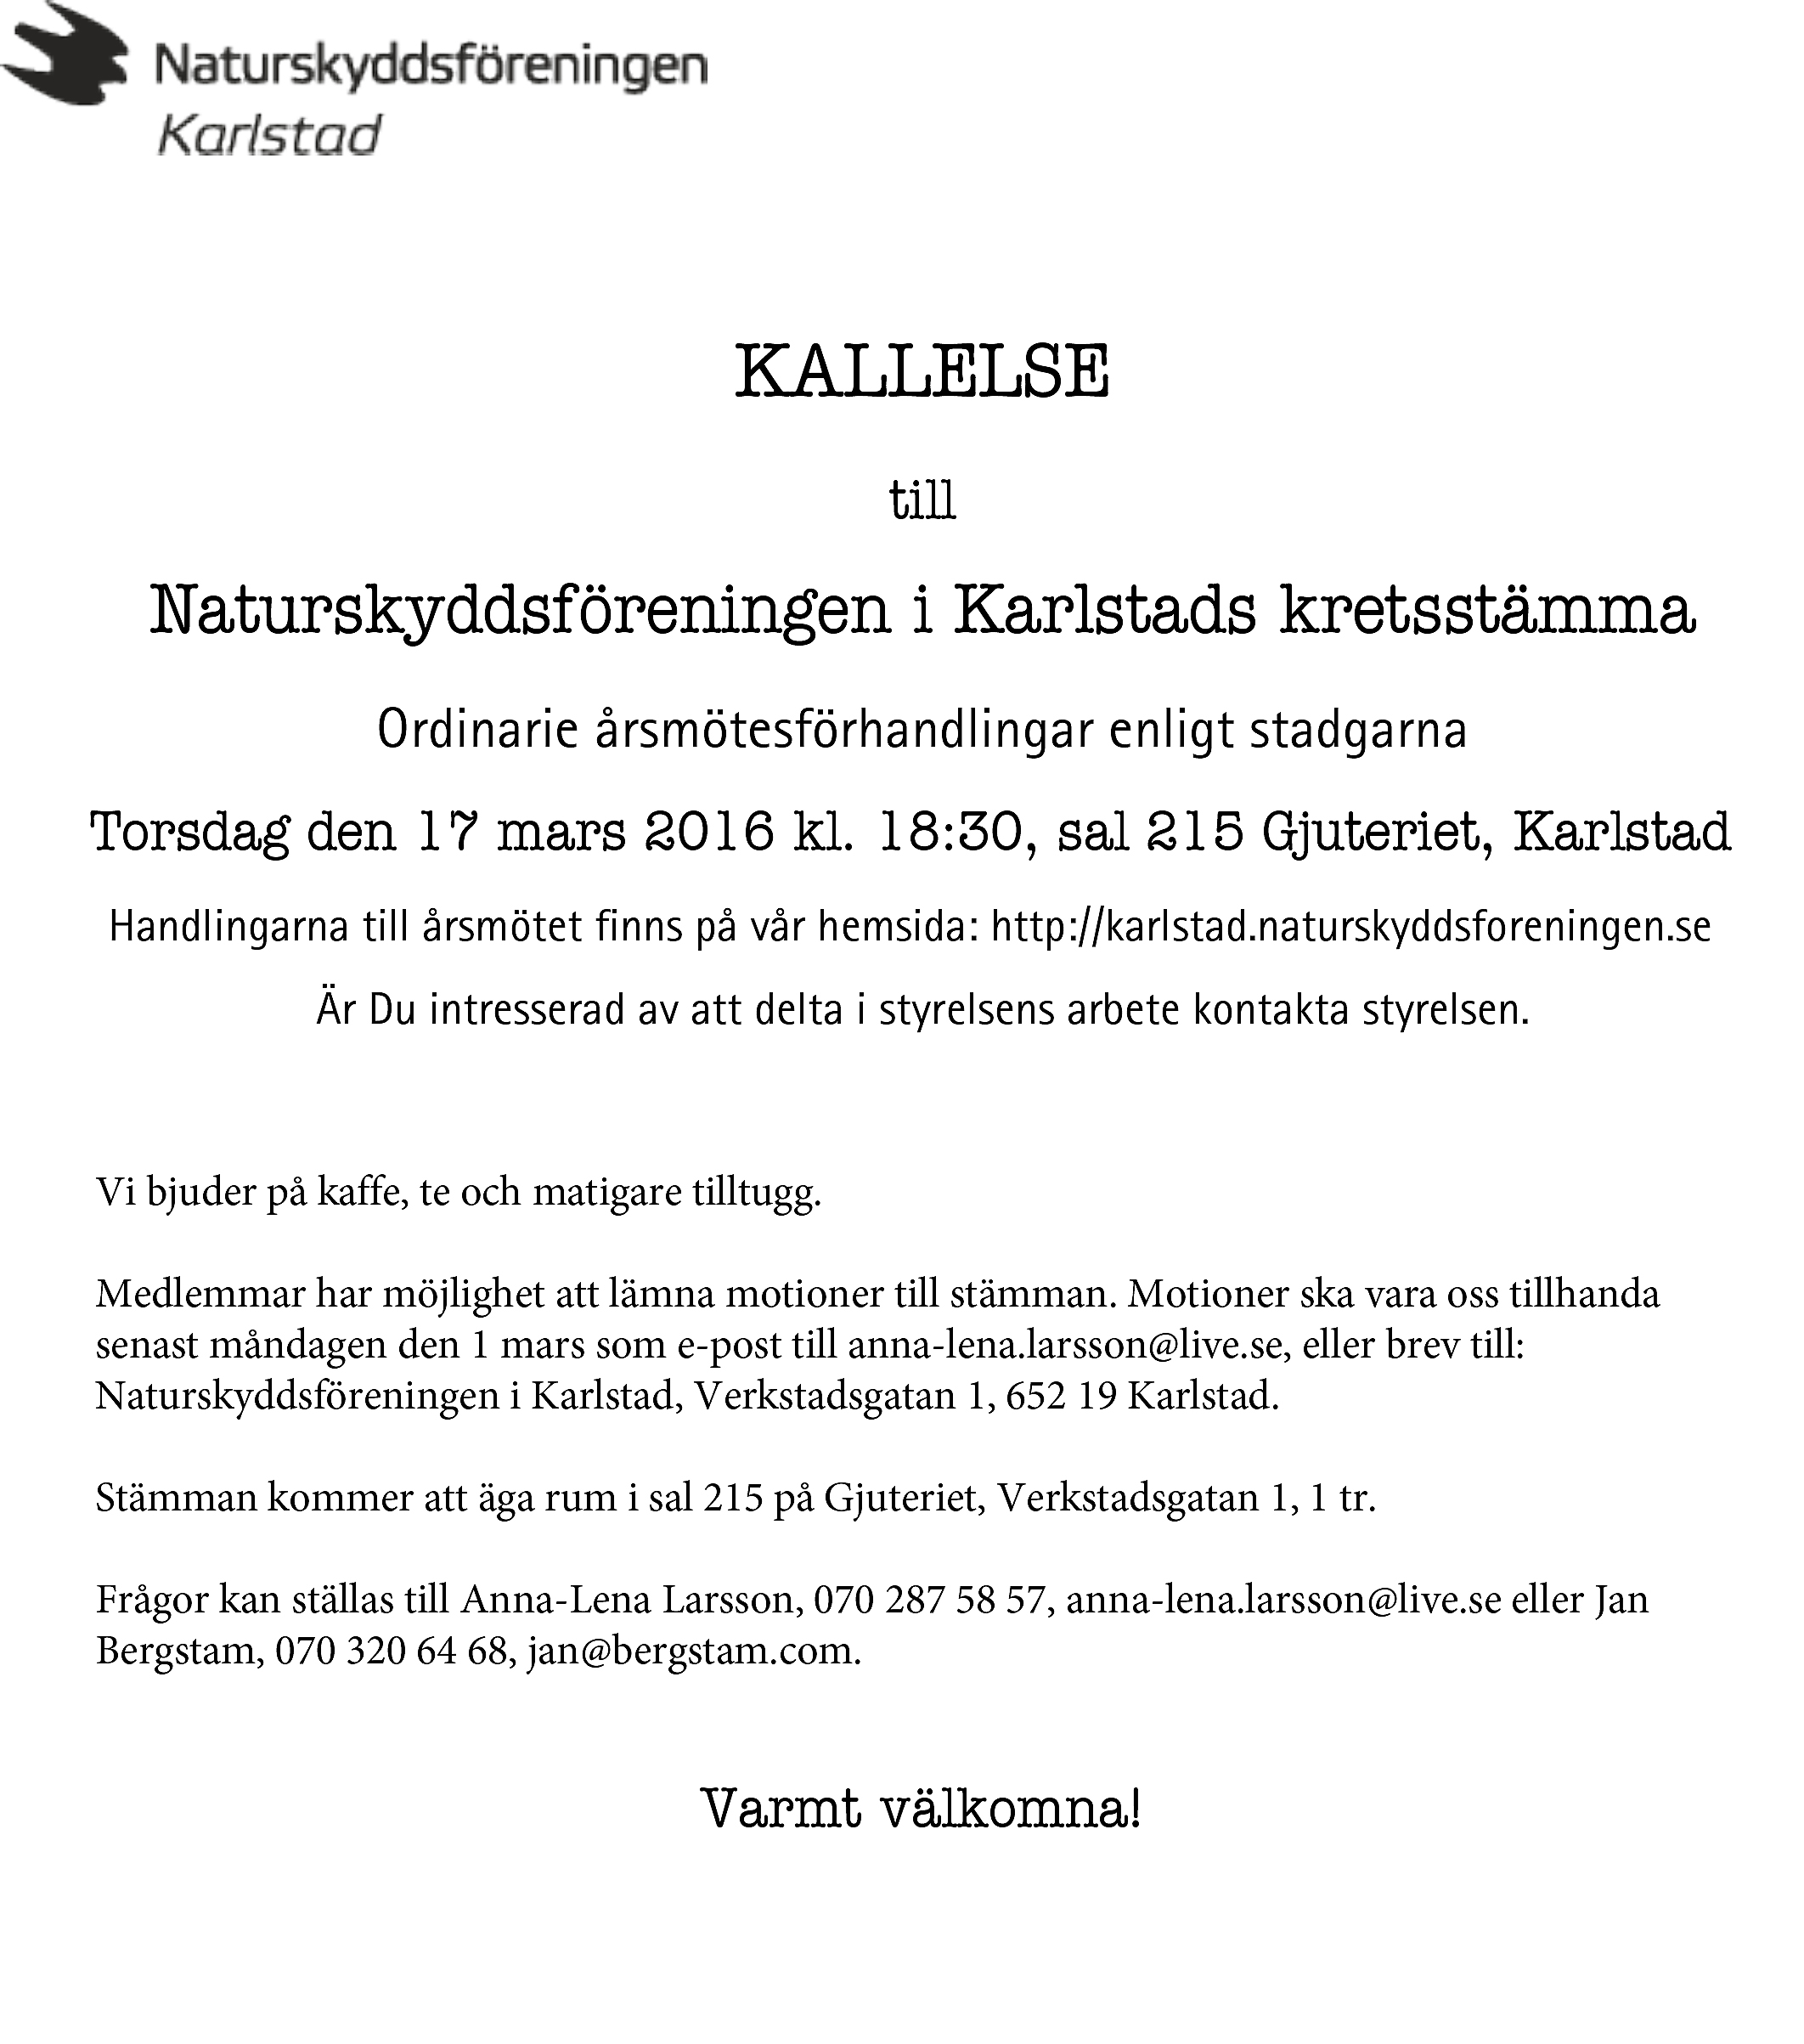 Microsoft Word - Kallelse.doc